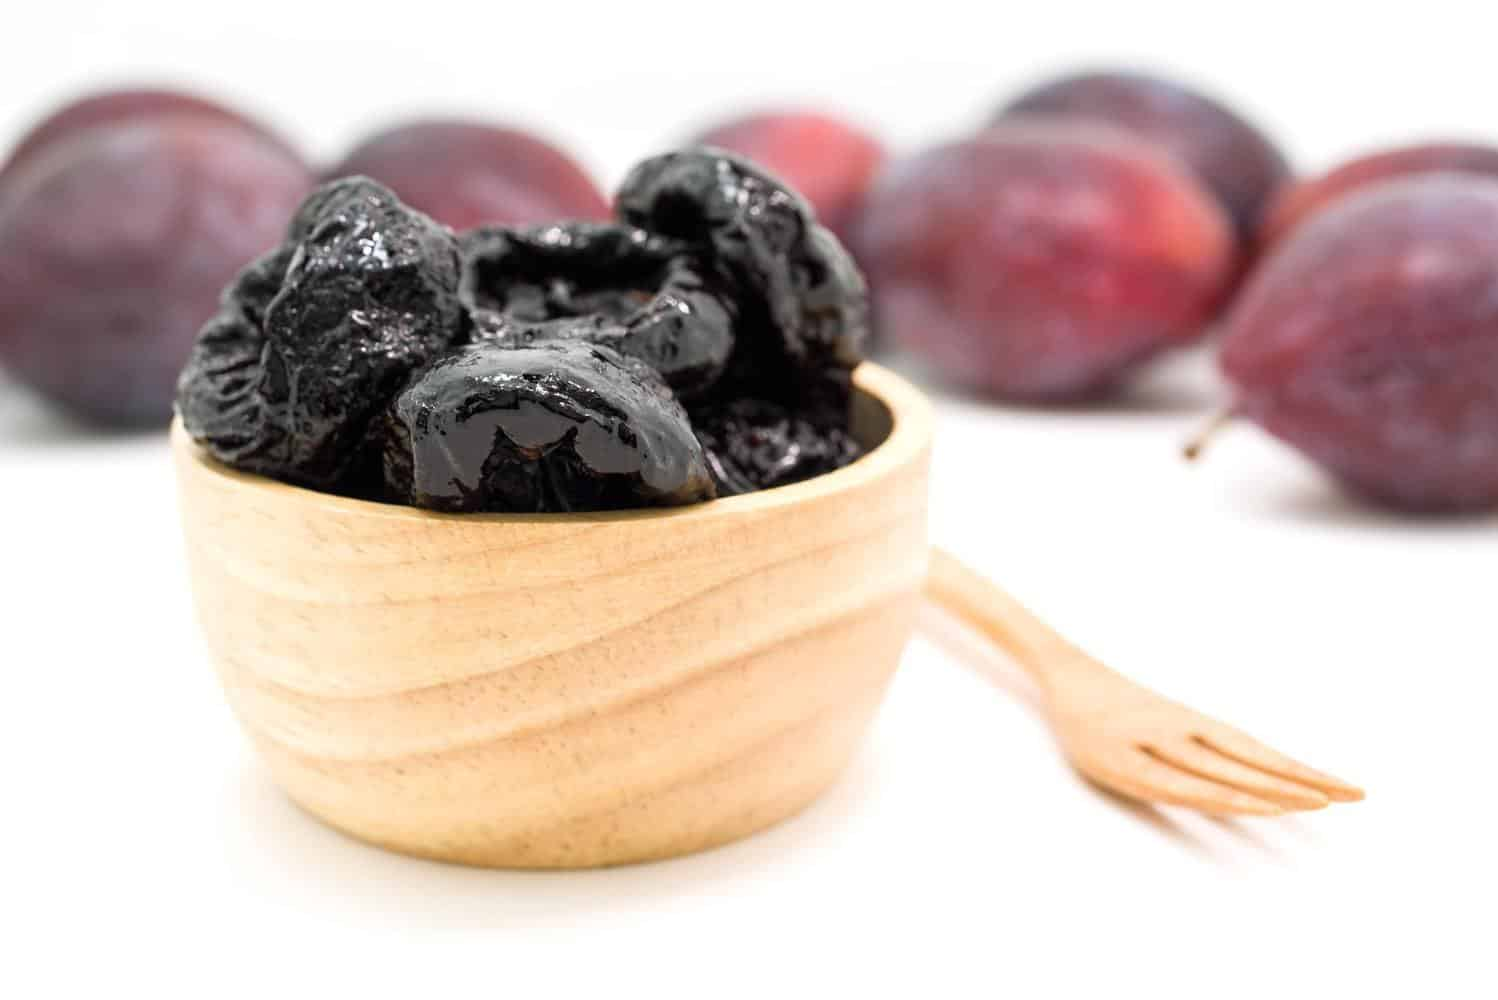 A cup of prunes.